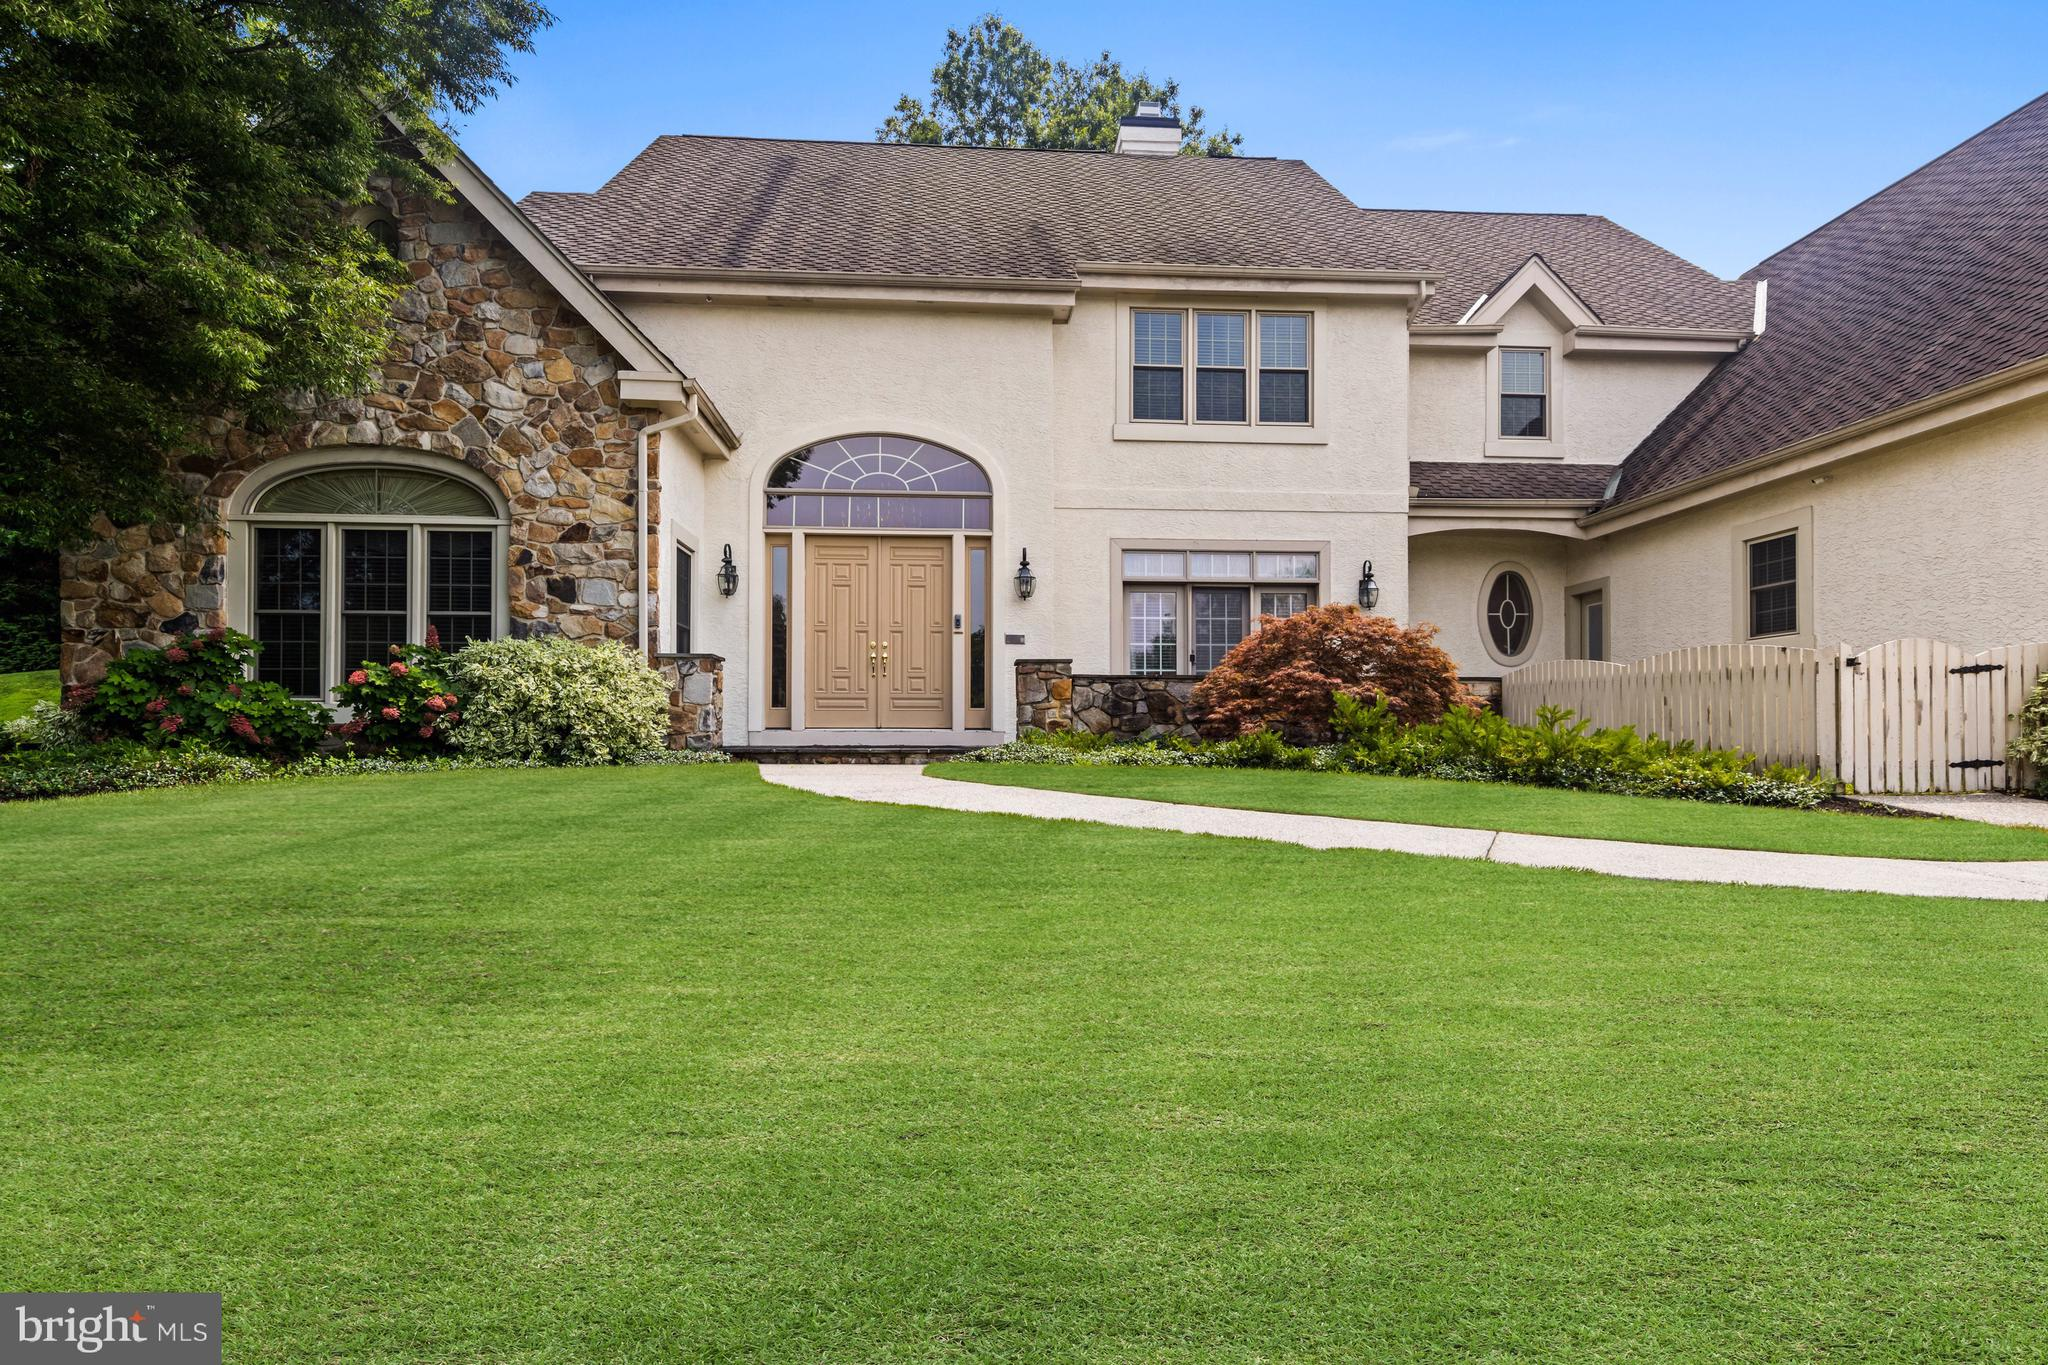 Set on a generously sized lot in the desirable neighborhood of Merestone sits this custom designed a